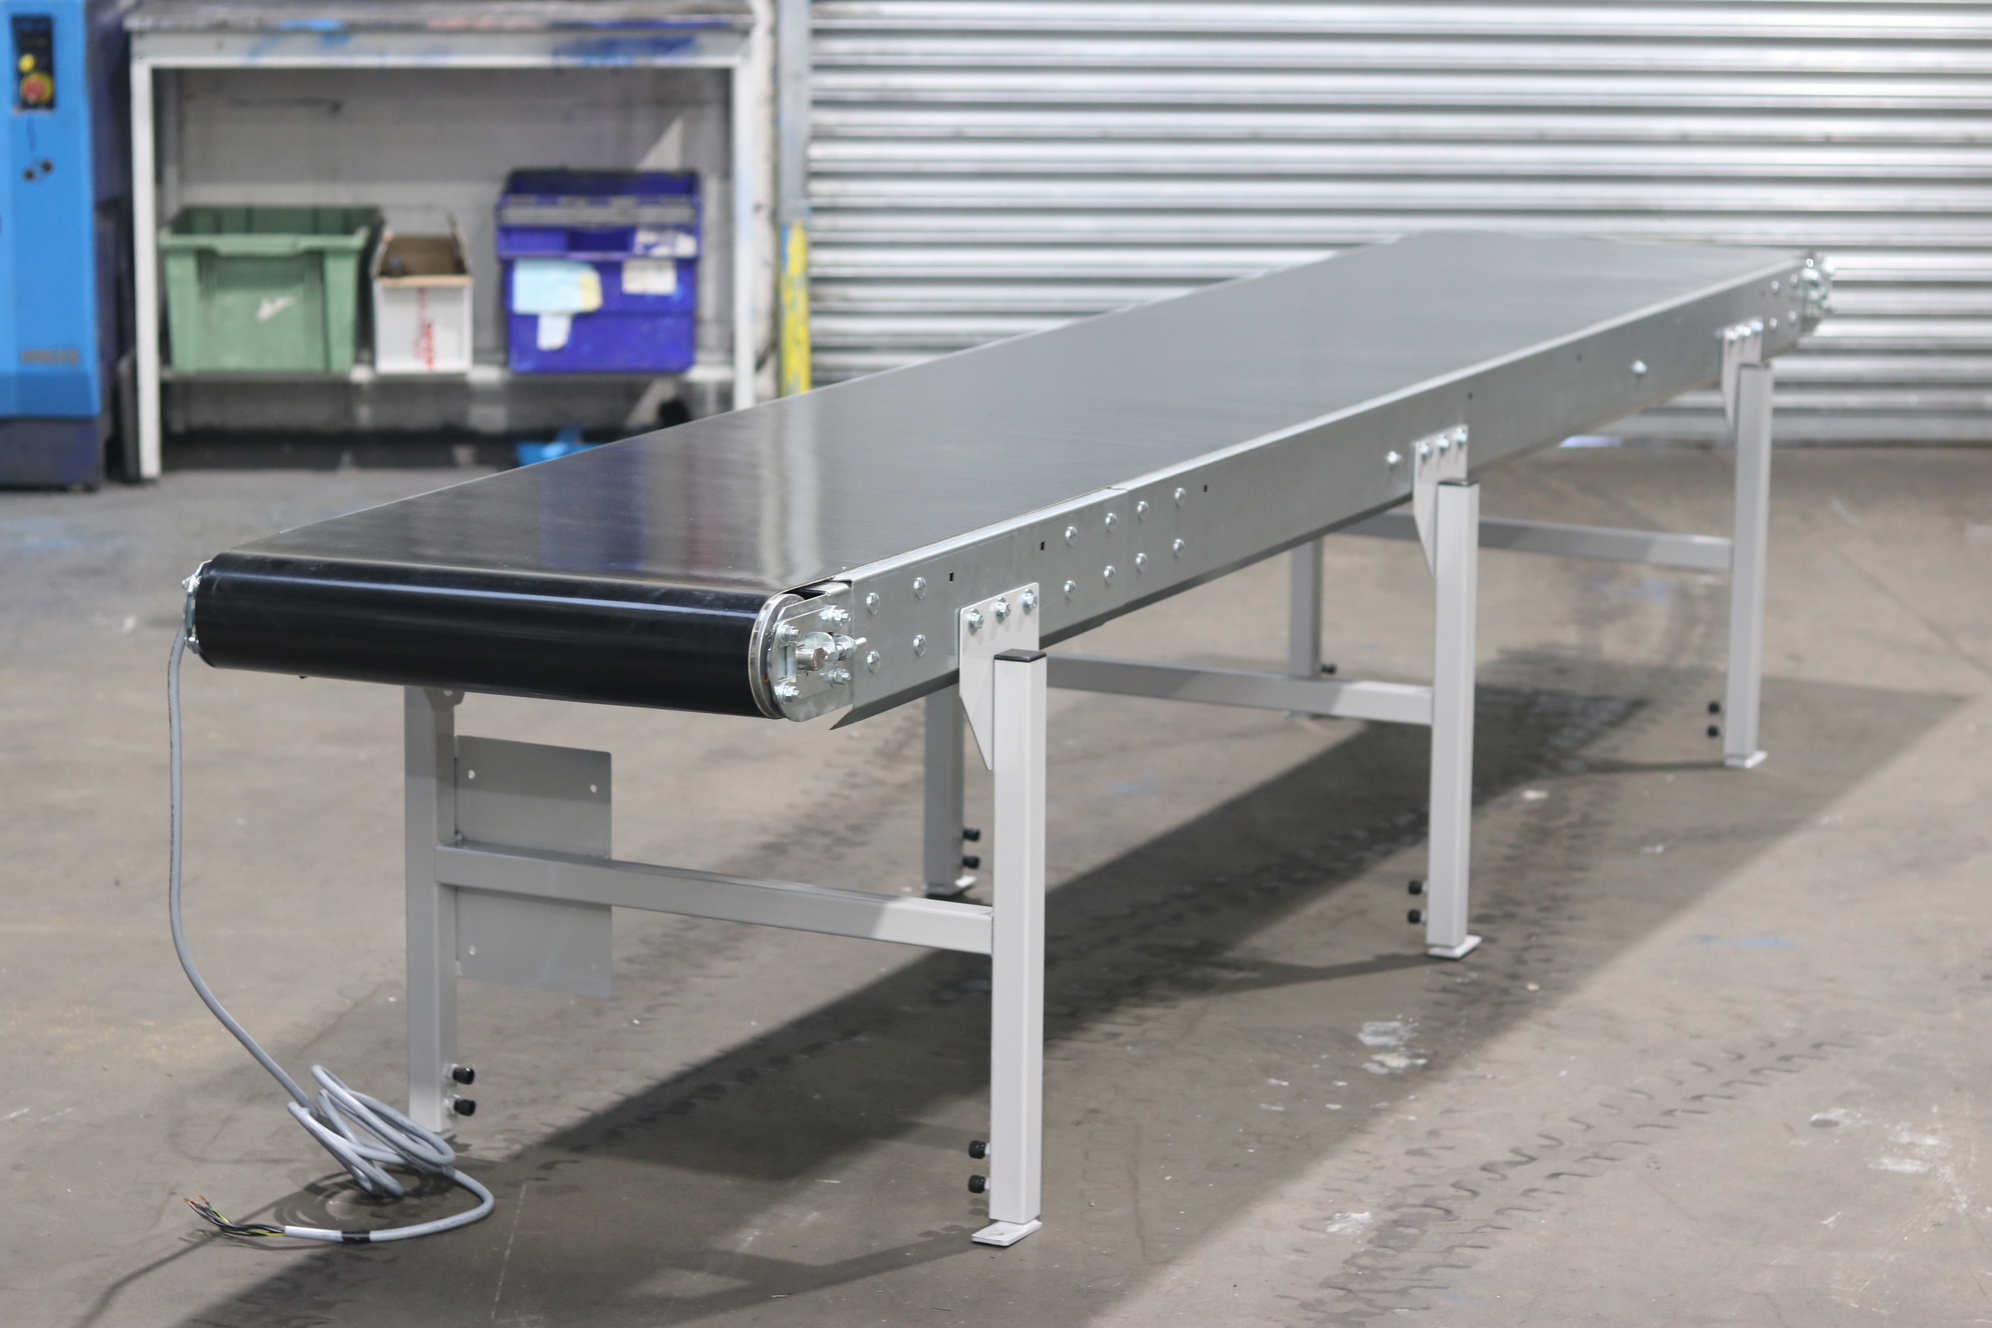 Reconditioned belt conveyors for sale but used conveyors